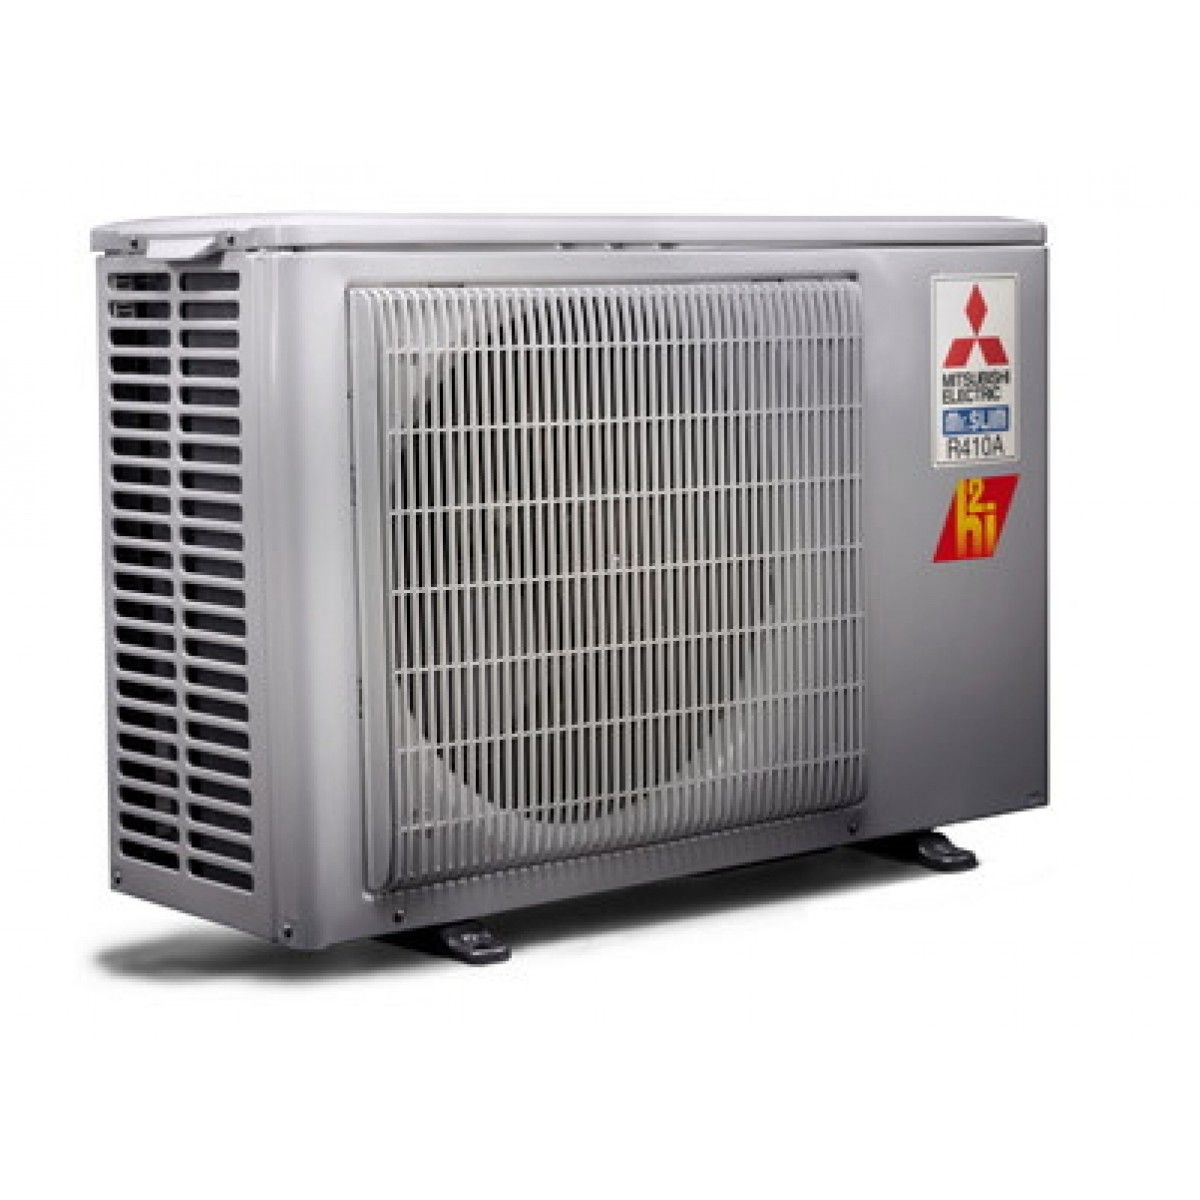 #783E3D Mitsubishi 12 000 BTU Heat Pump Hyper Heat 26 SEER System  Highly Rated 5319 Mitsubishi Cooling And Heating Units wallpapers with 1200x1200 px on helpvideos.info - Air Conditioners, Air Coolers and more